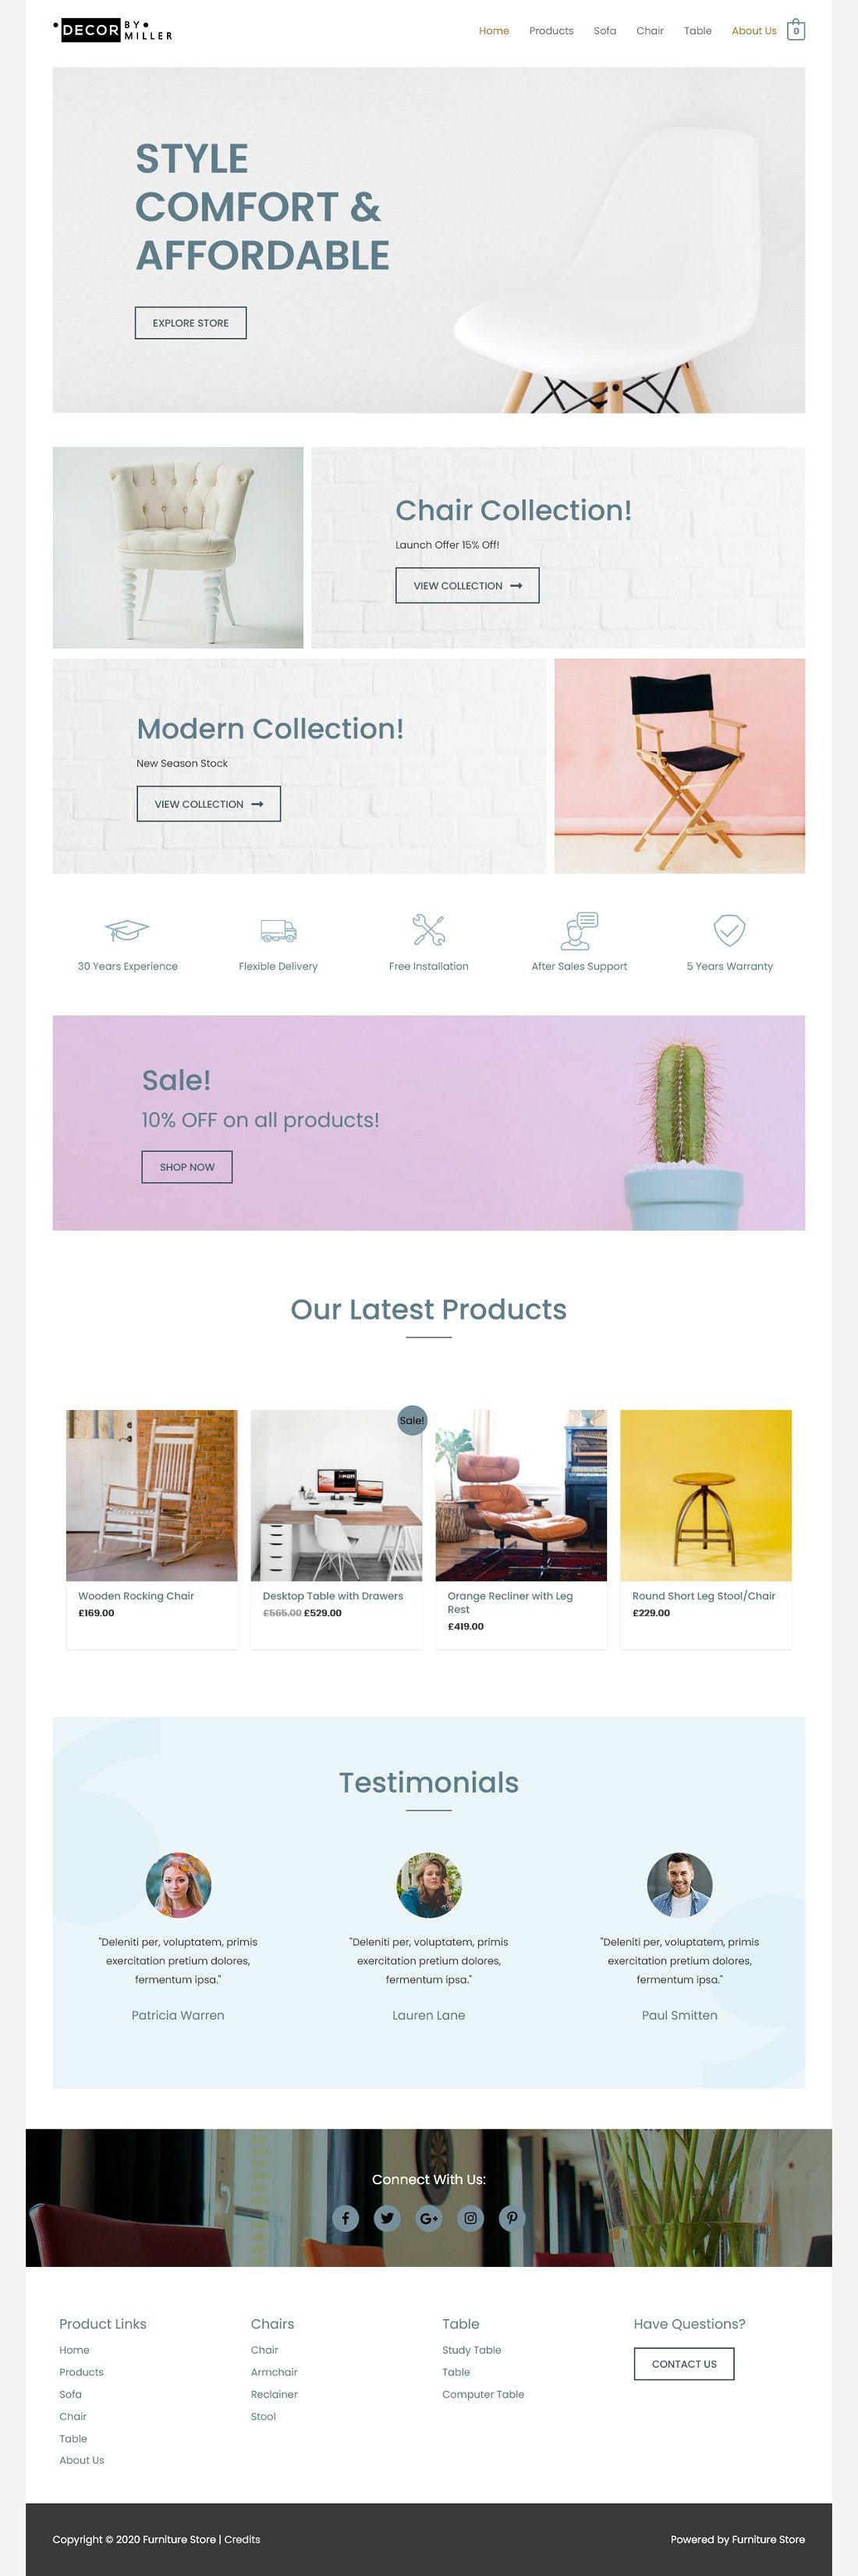 eCom Furniture Store - Multipurpose - Home Page 1280 x 3301